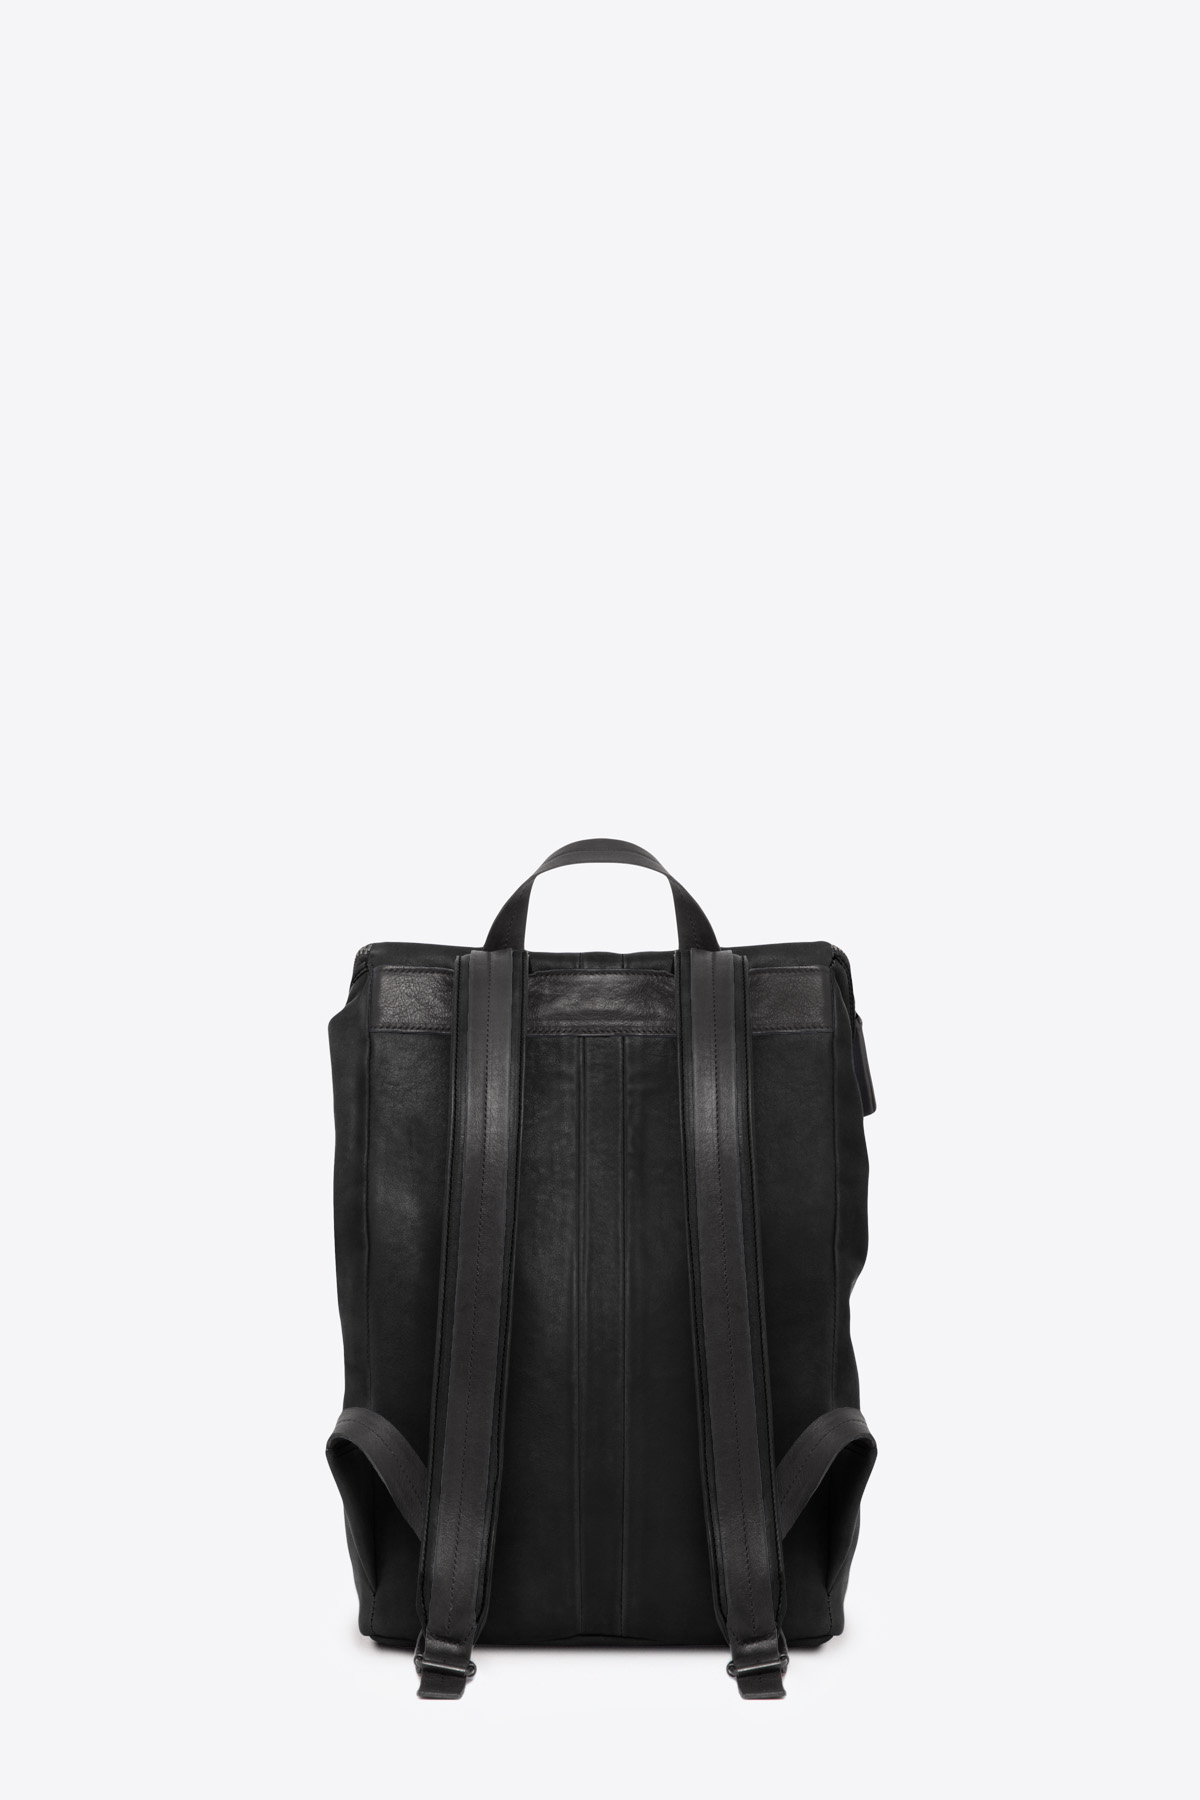 dclr011-backpack-a1-black-back